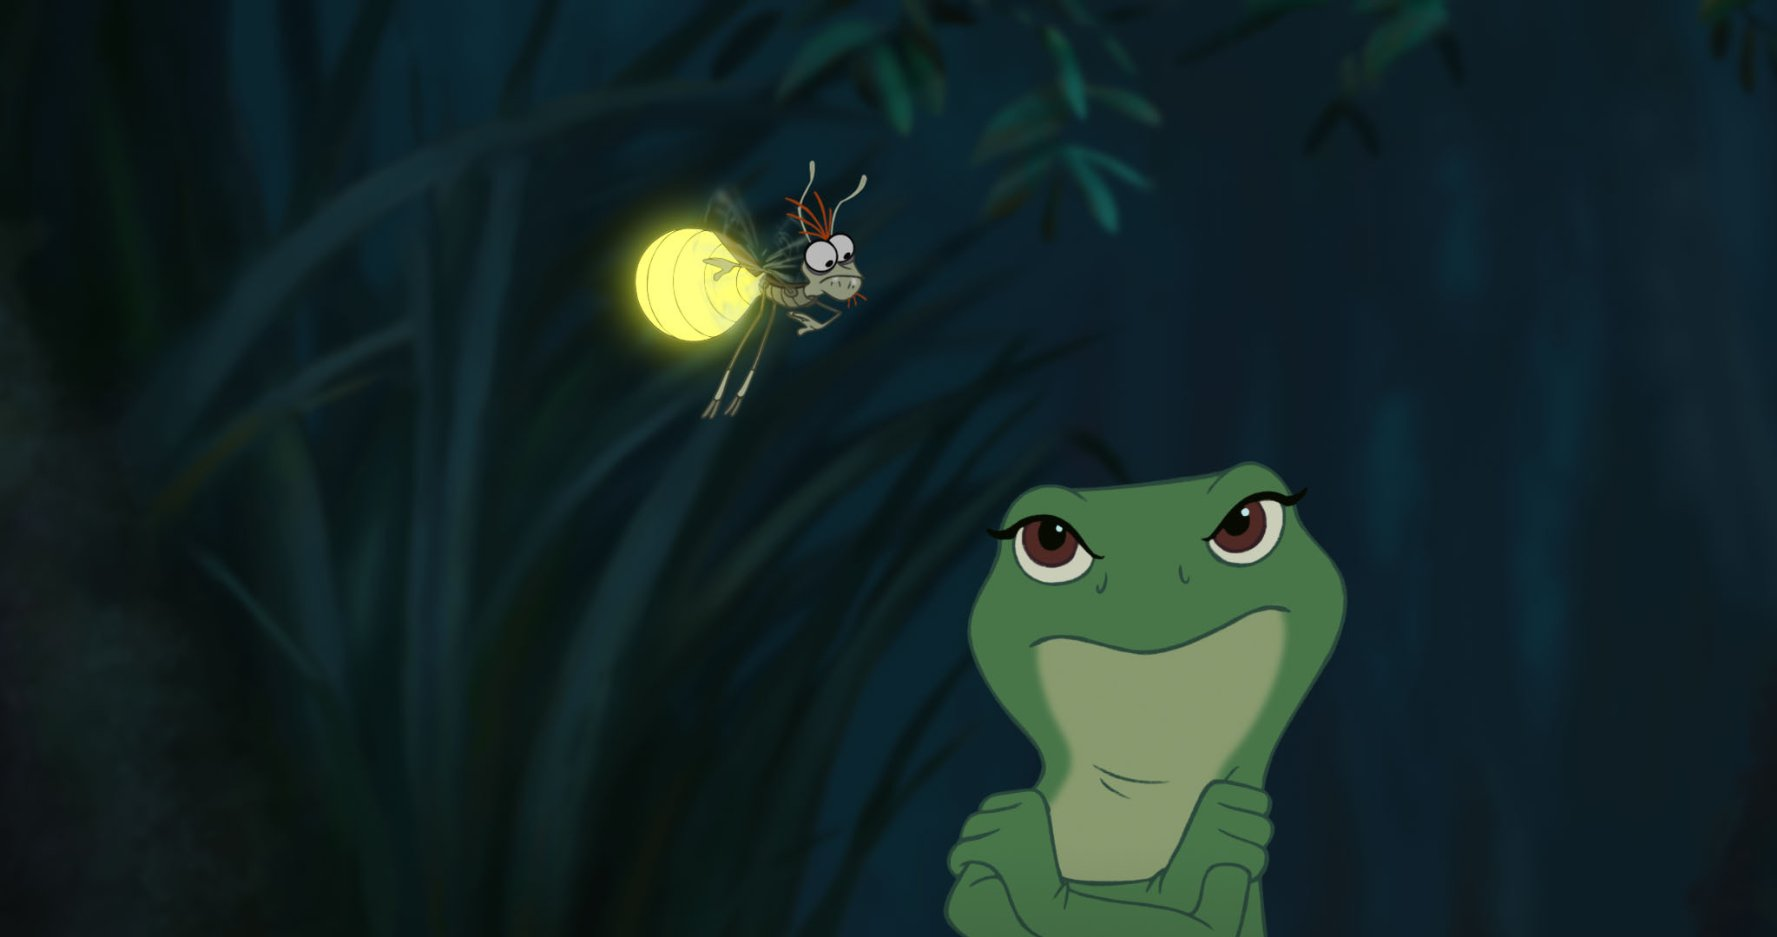 princess and the frog watch online movie2k